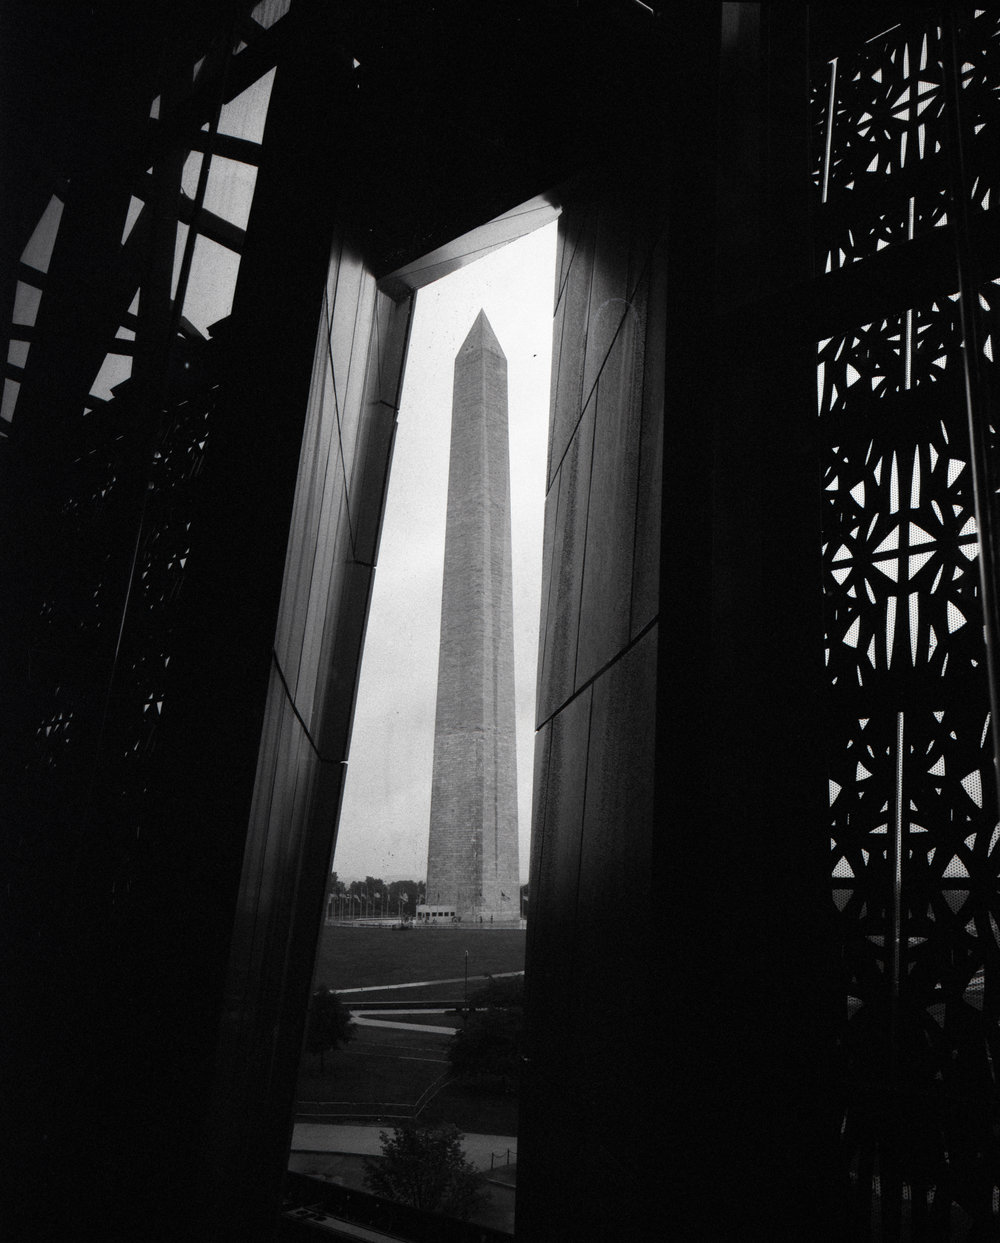 Washington Monument GF670w + Bergger 400 at 1600 in Xtol